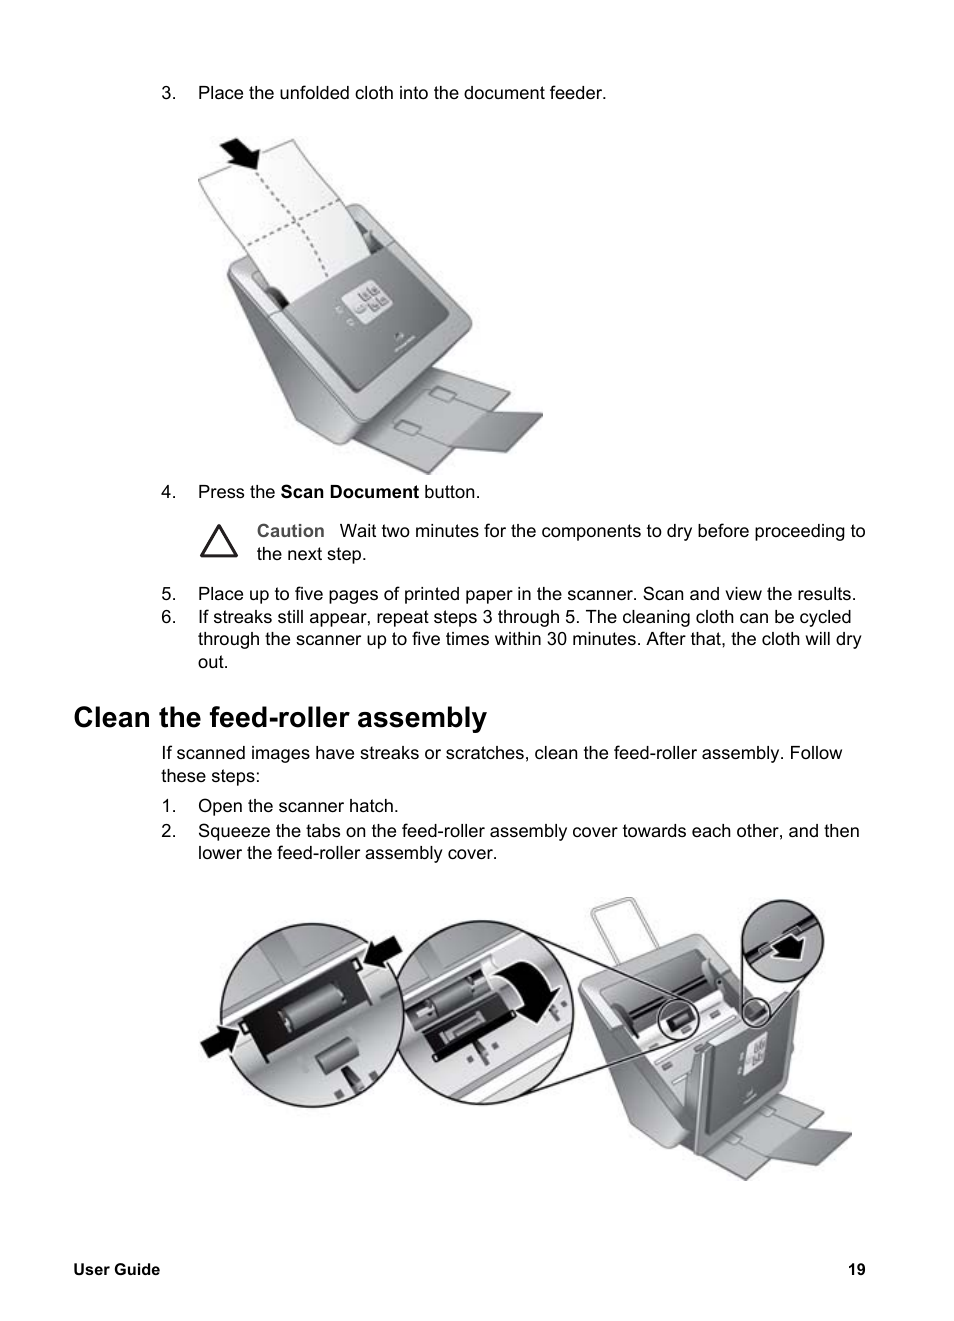 clean the feed roller assembly hp scanjet n6010 document sheet rh manualsdir com HP Scanjet N6010 Sale HP Printer Power Cord